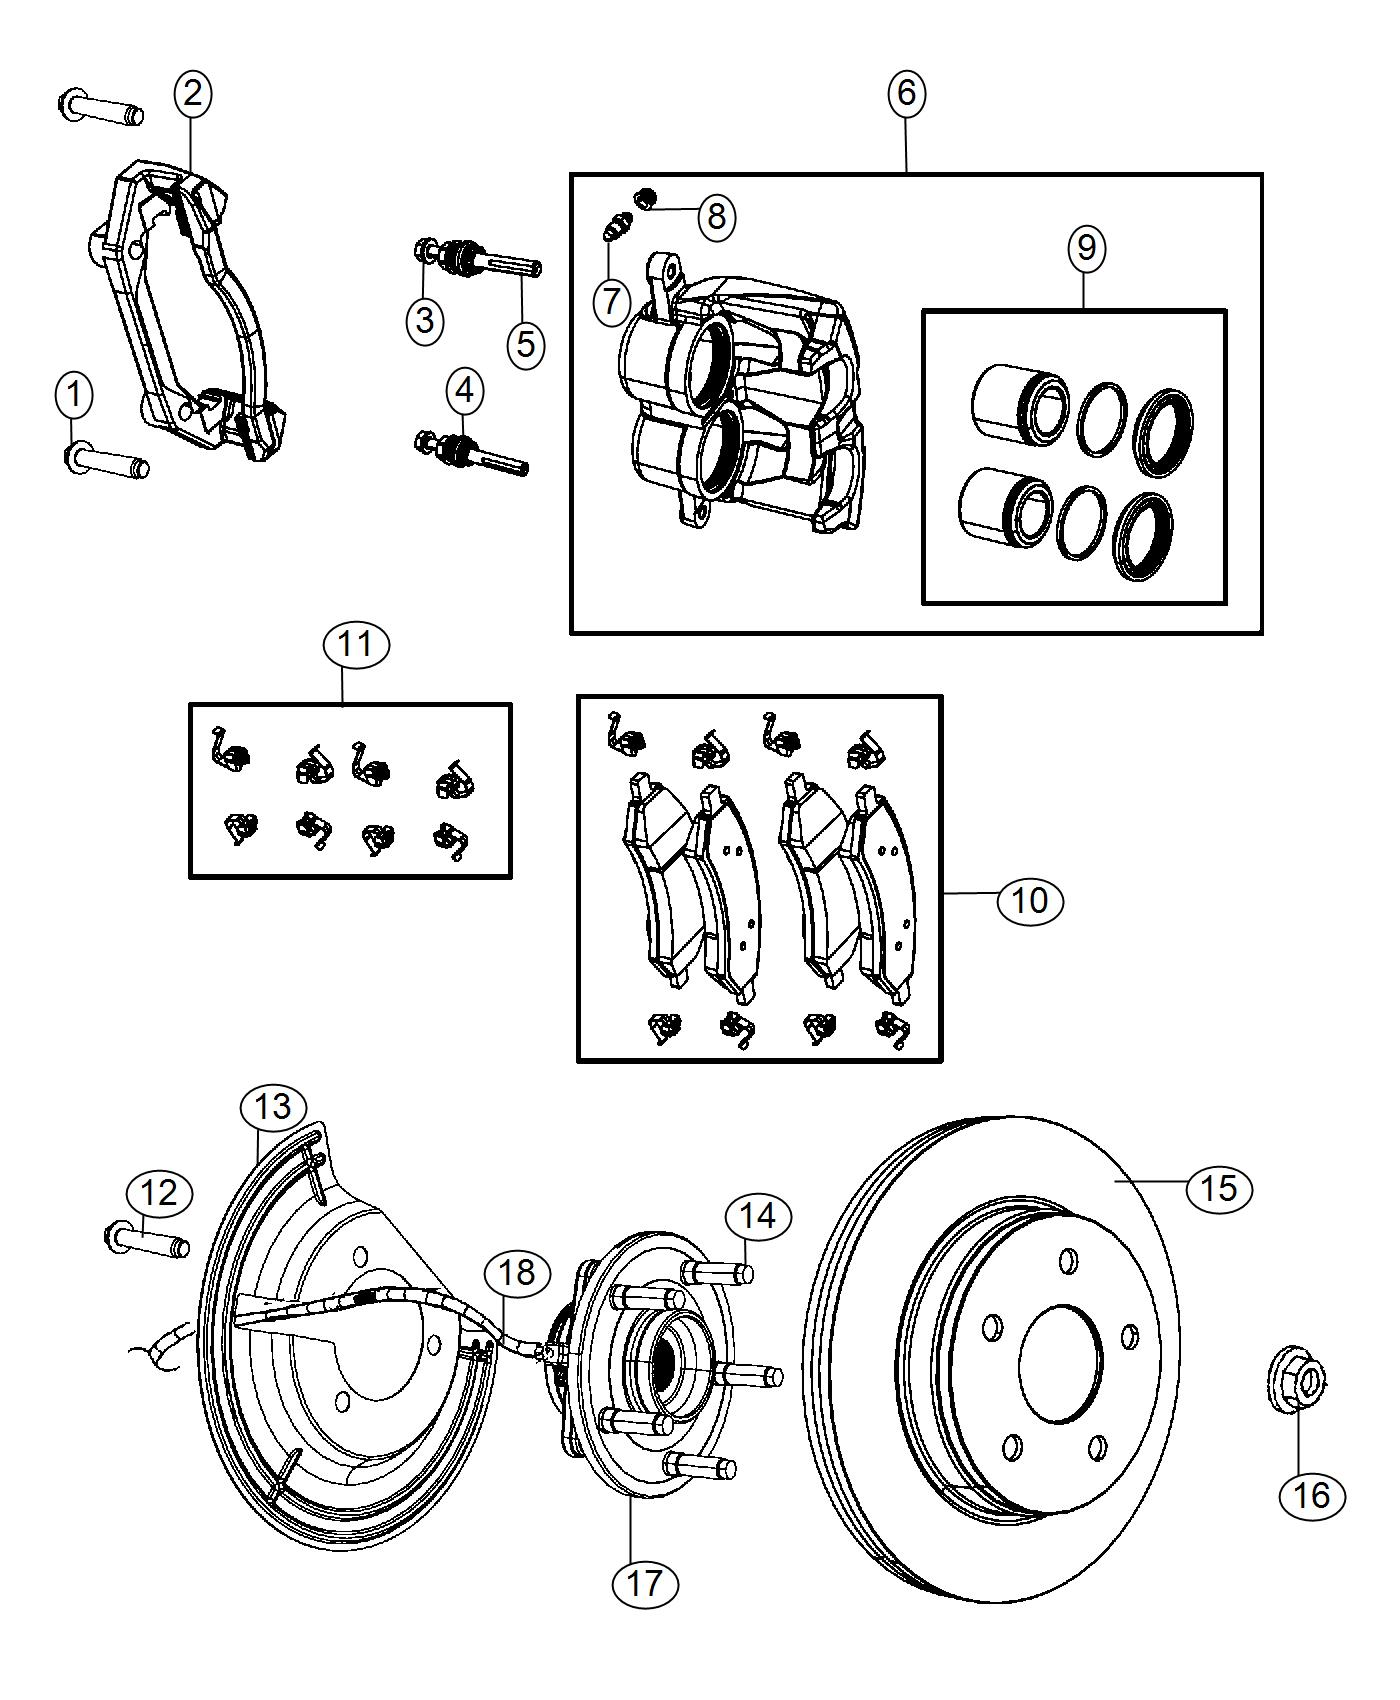 Ram Used For Hub And Bearing Brake Front